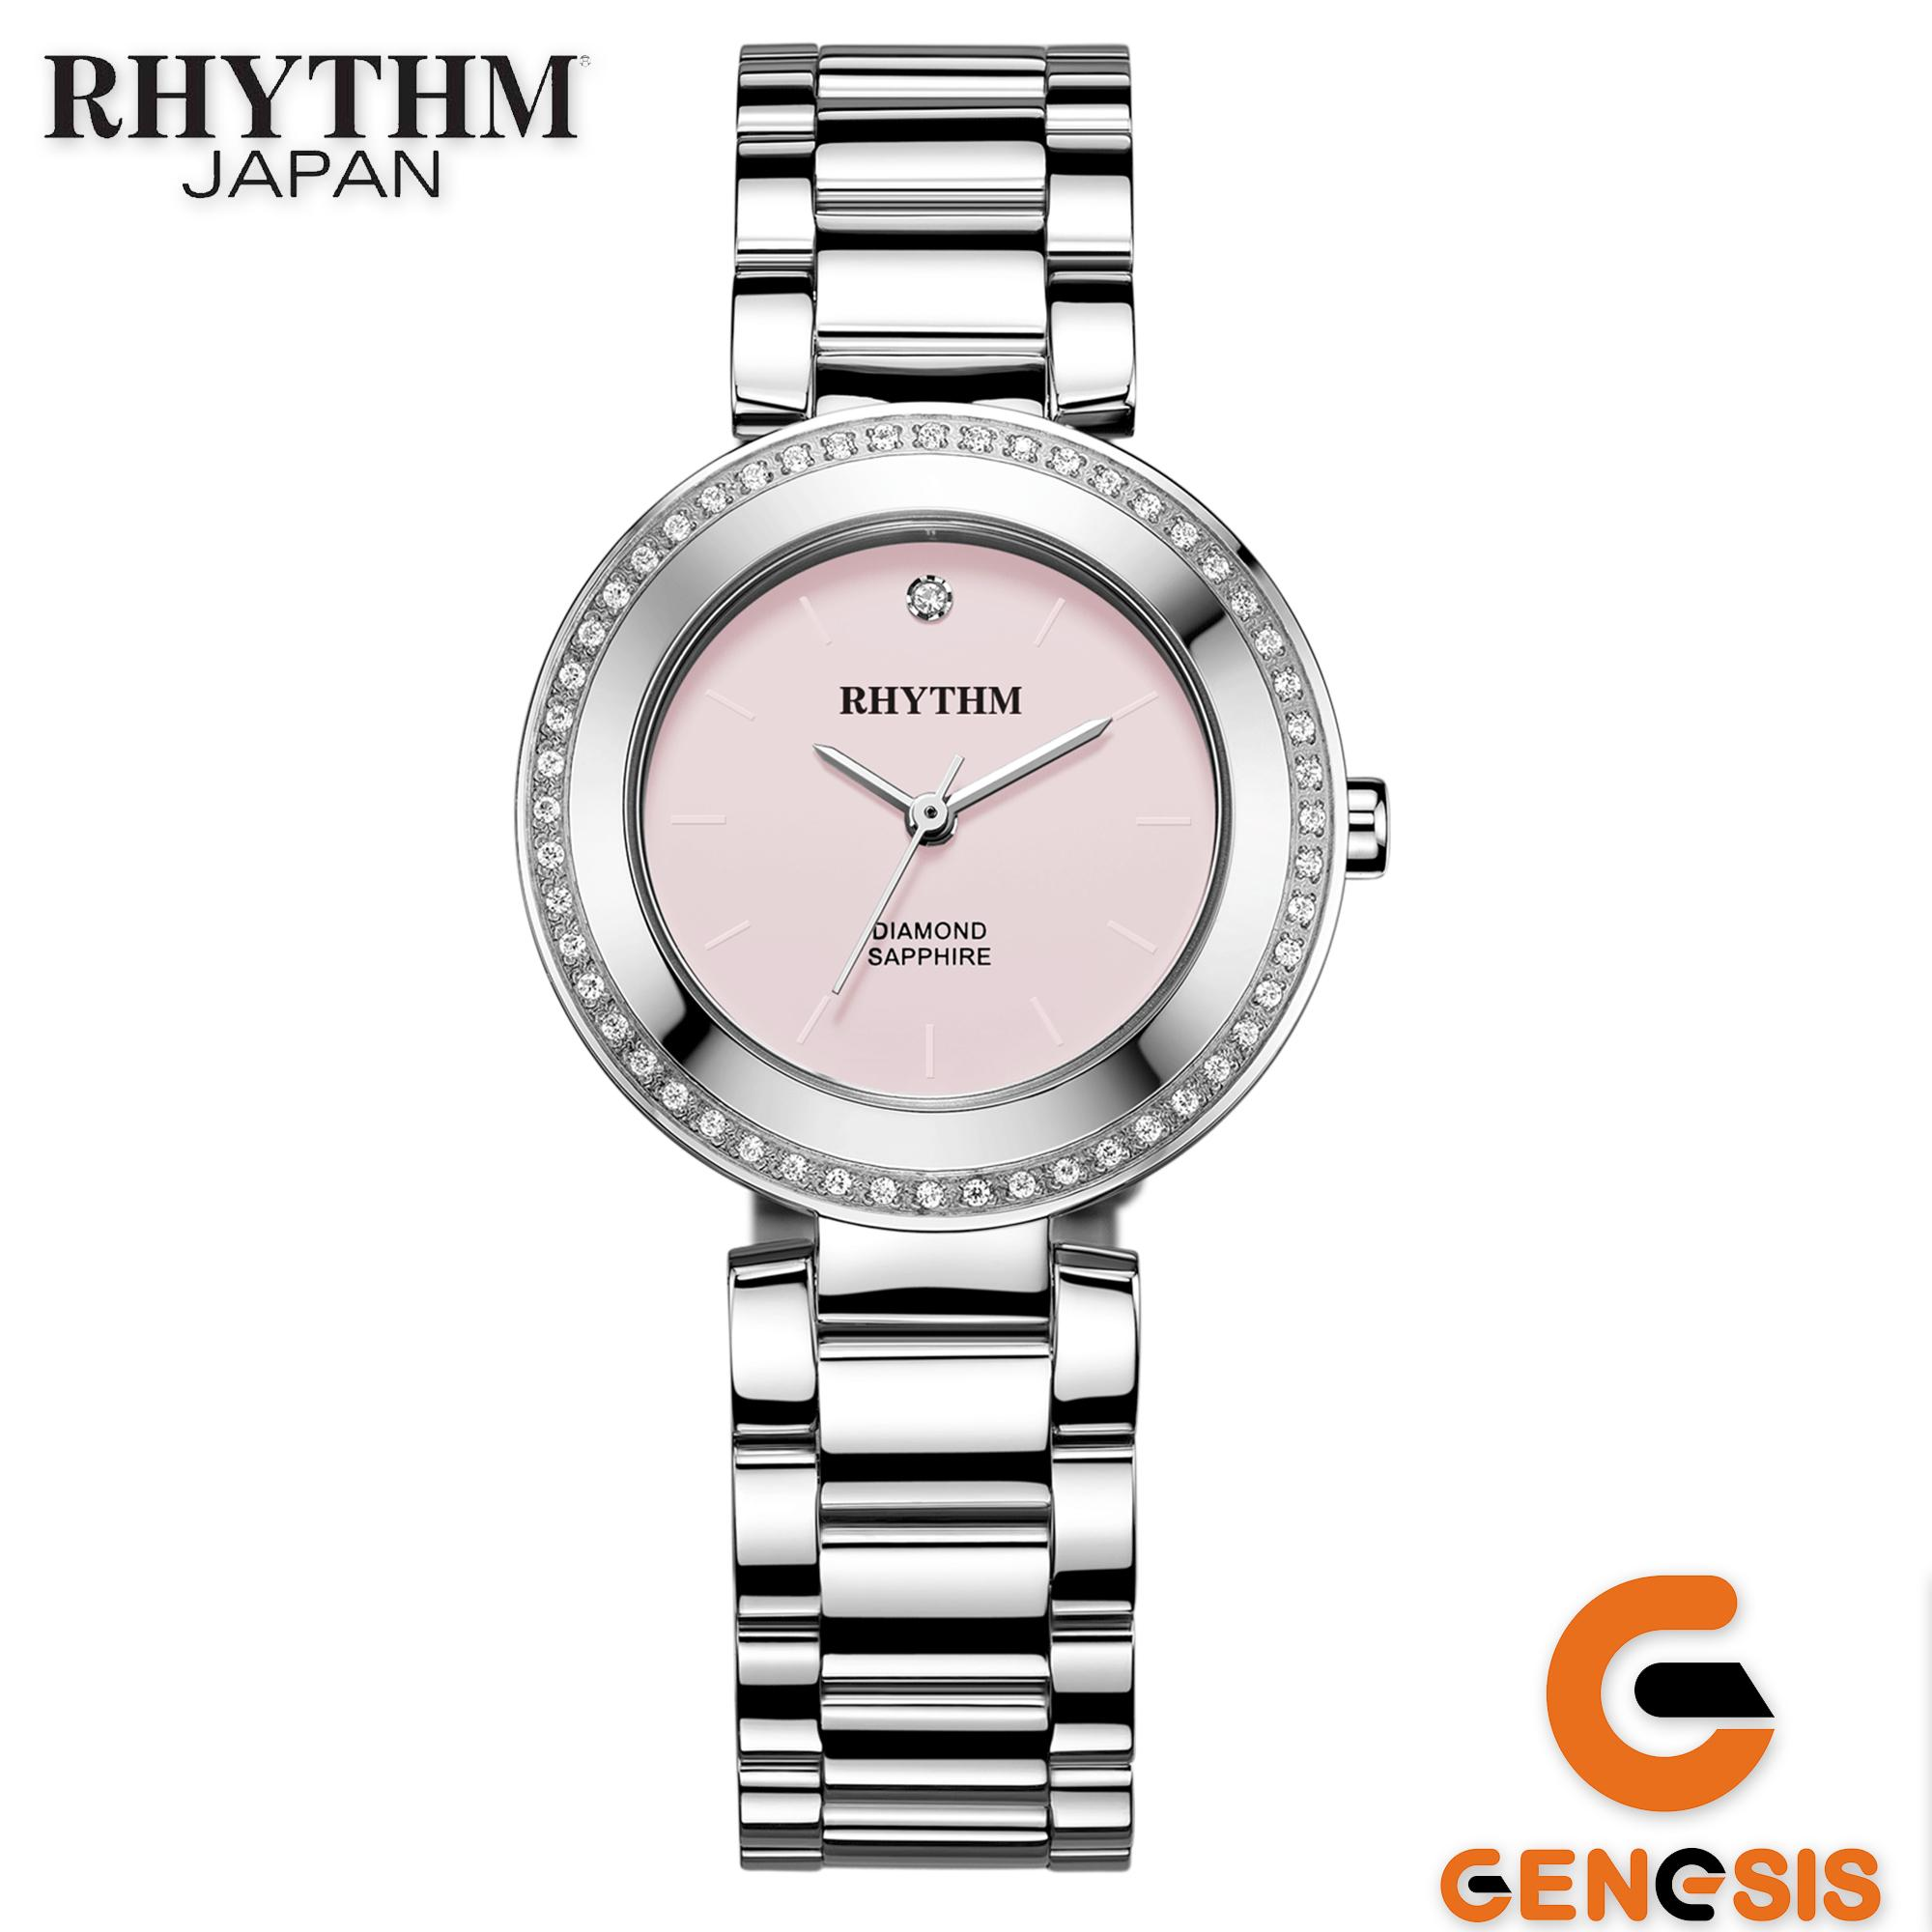 Rhythm Traditional Collection R1204s 05 Jam Tangan Wanita Daftar L1201s 03 Stainless Silver Gold Tali Rantai Logam Stainlees Steel Quartz Shappire Glass L1202s02